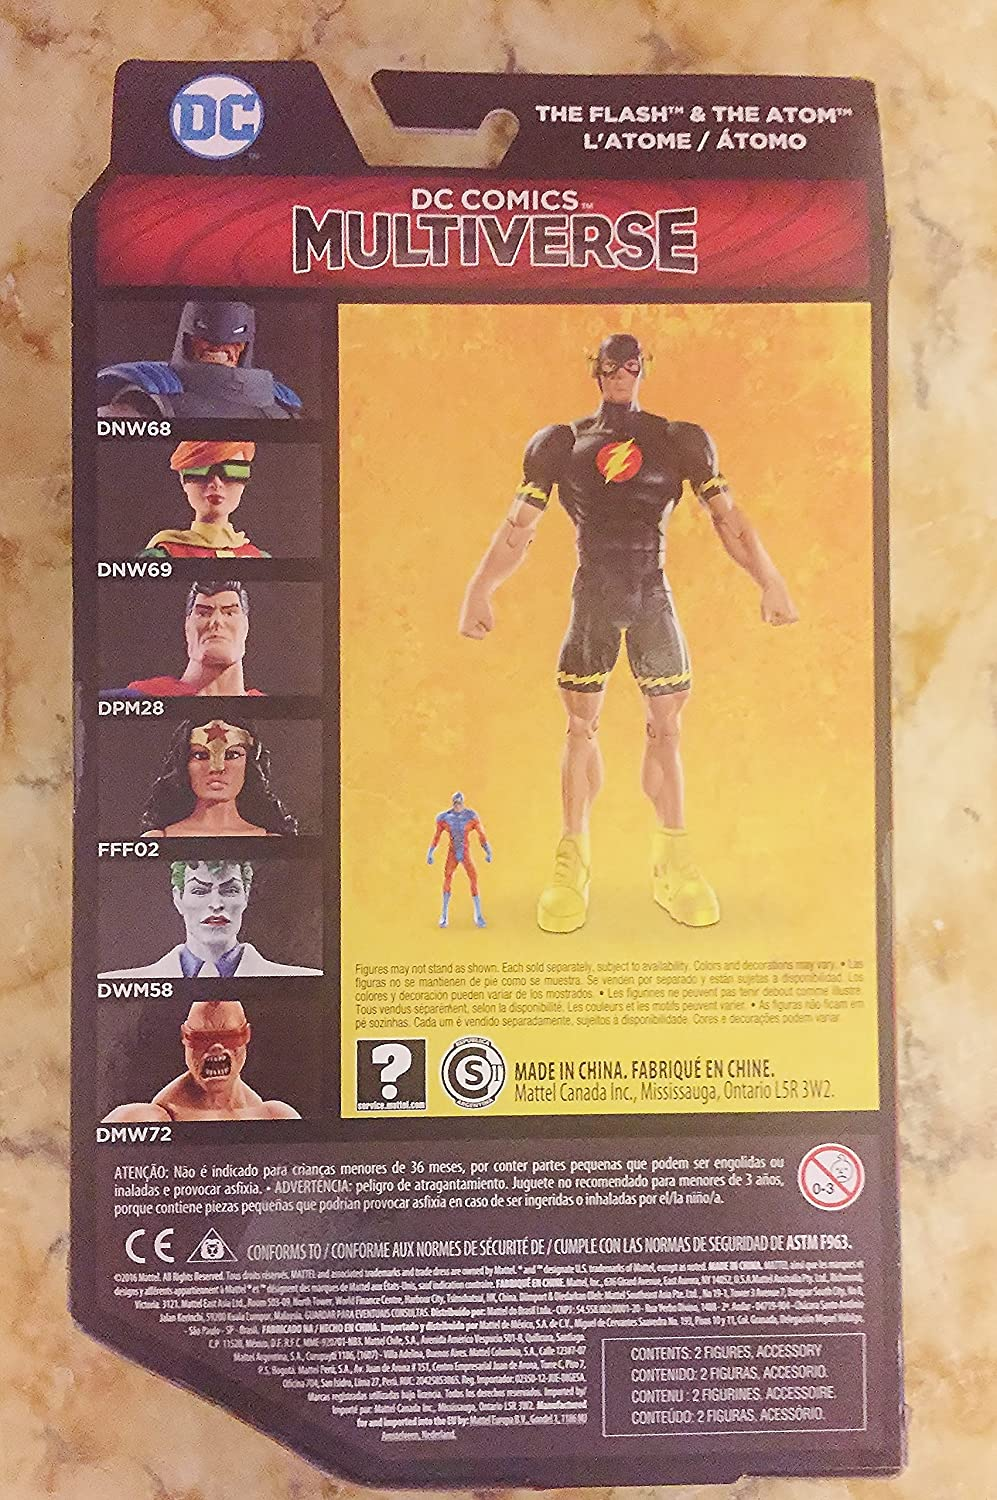 DC Multiverse The Flash and The Atom Figures from The Dark Knight Returns New